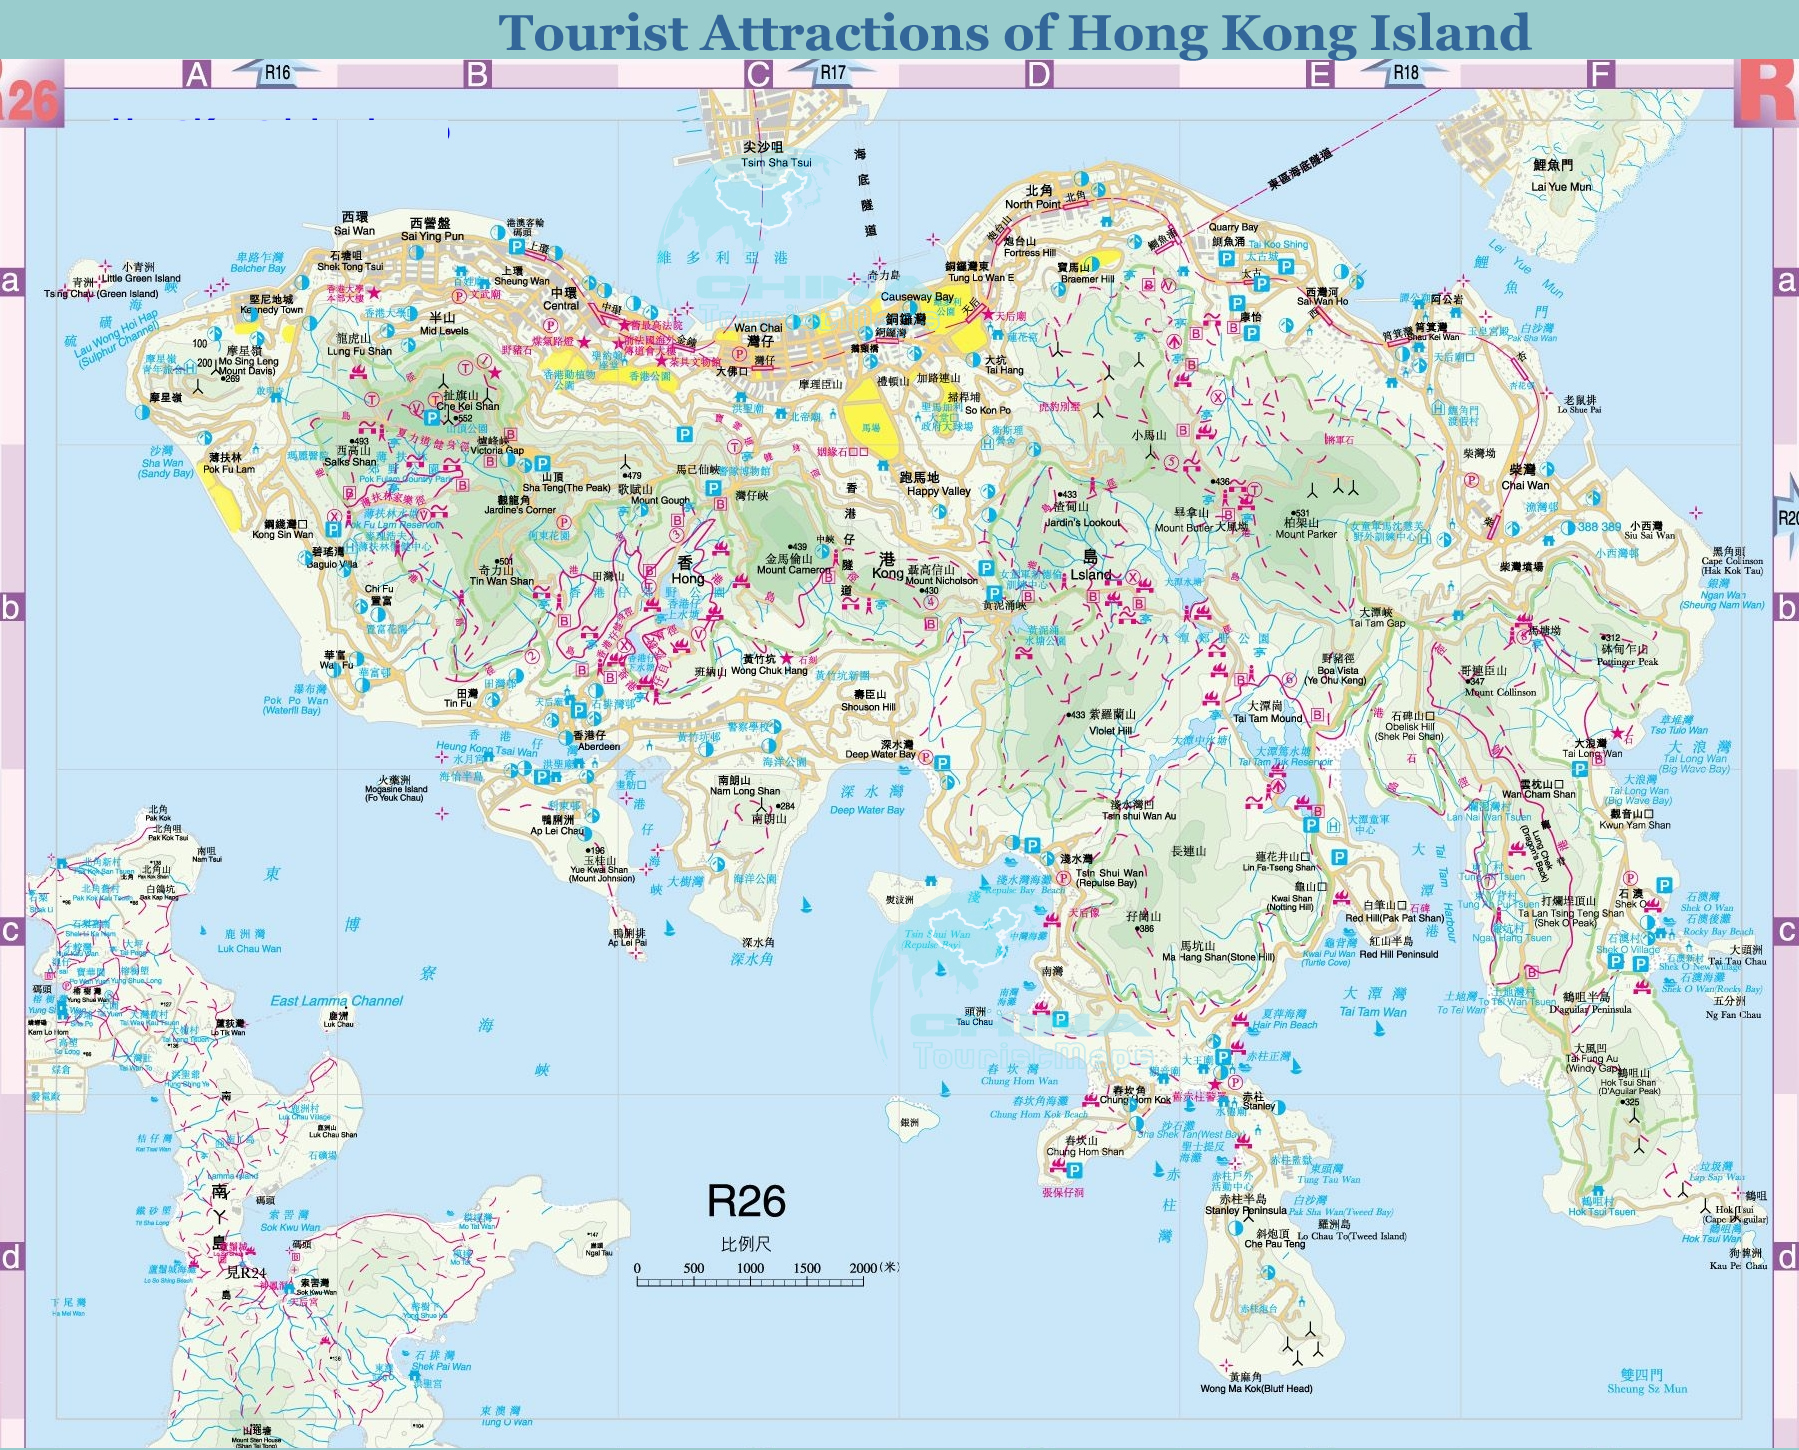 tourist map of hong kong island  layout travel guide - tourist attractions routes of hong kong island